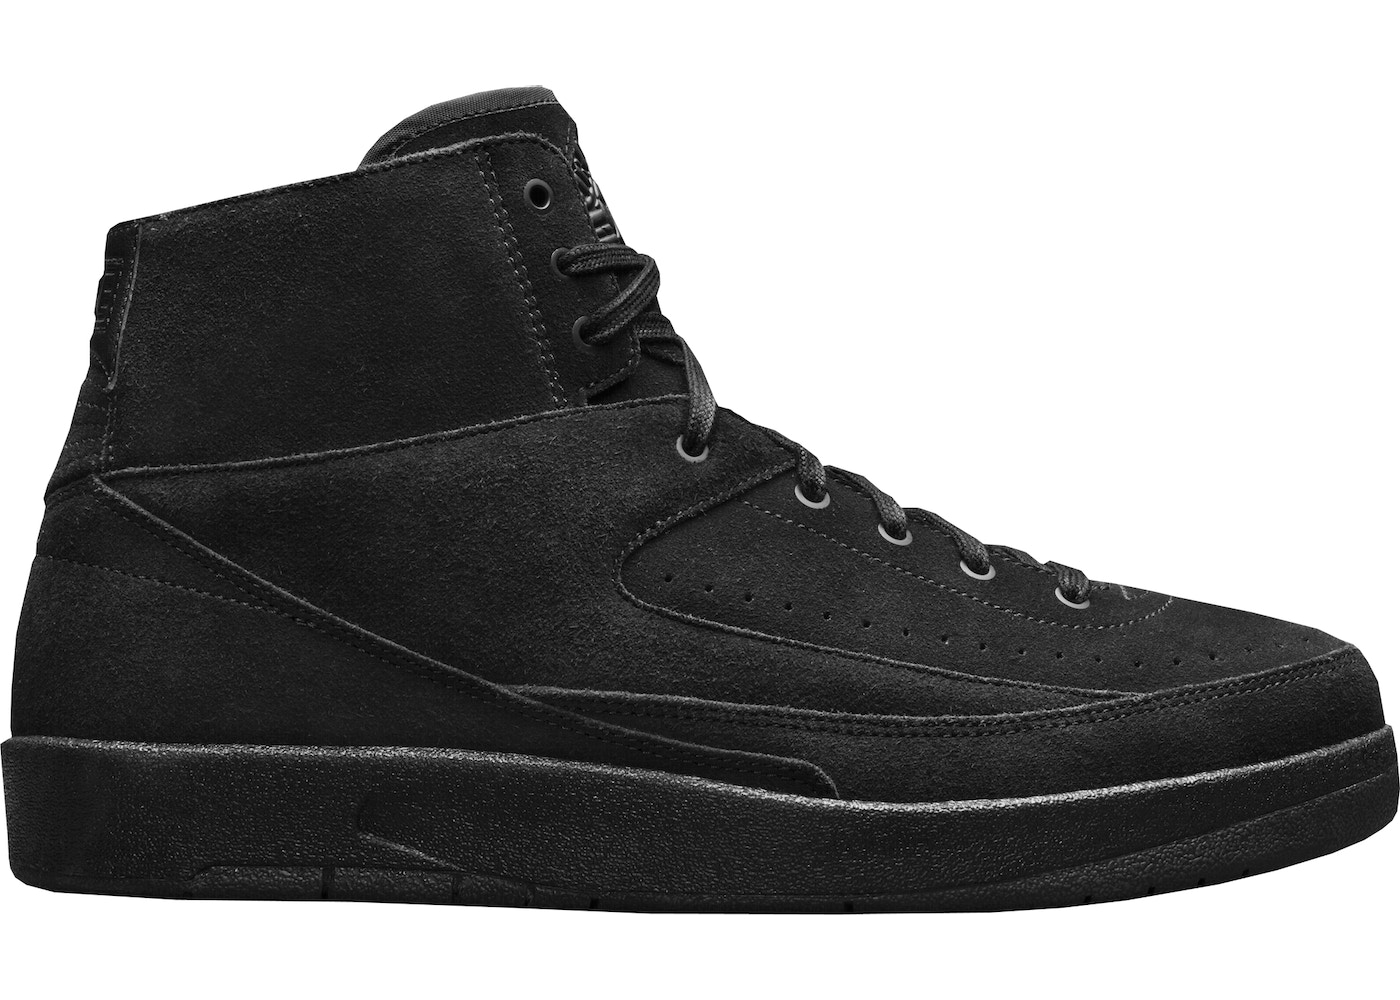 sale retailer 0ed3f 2d11d Jordan 2 Retro Decon Black - 897521-010